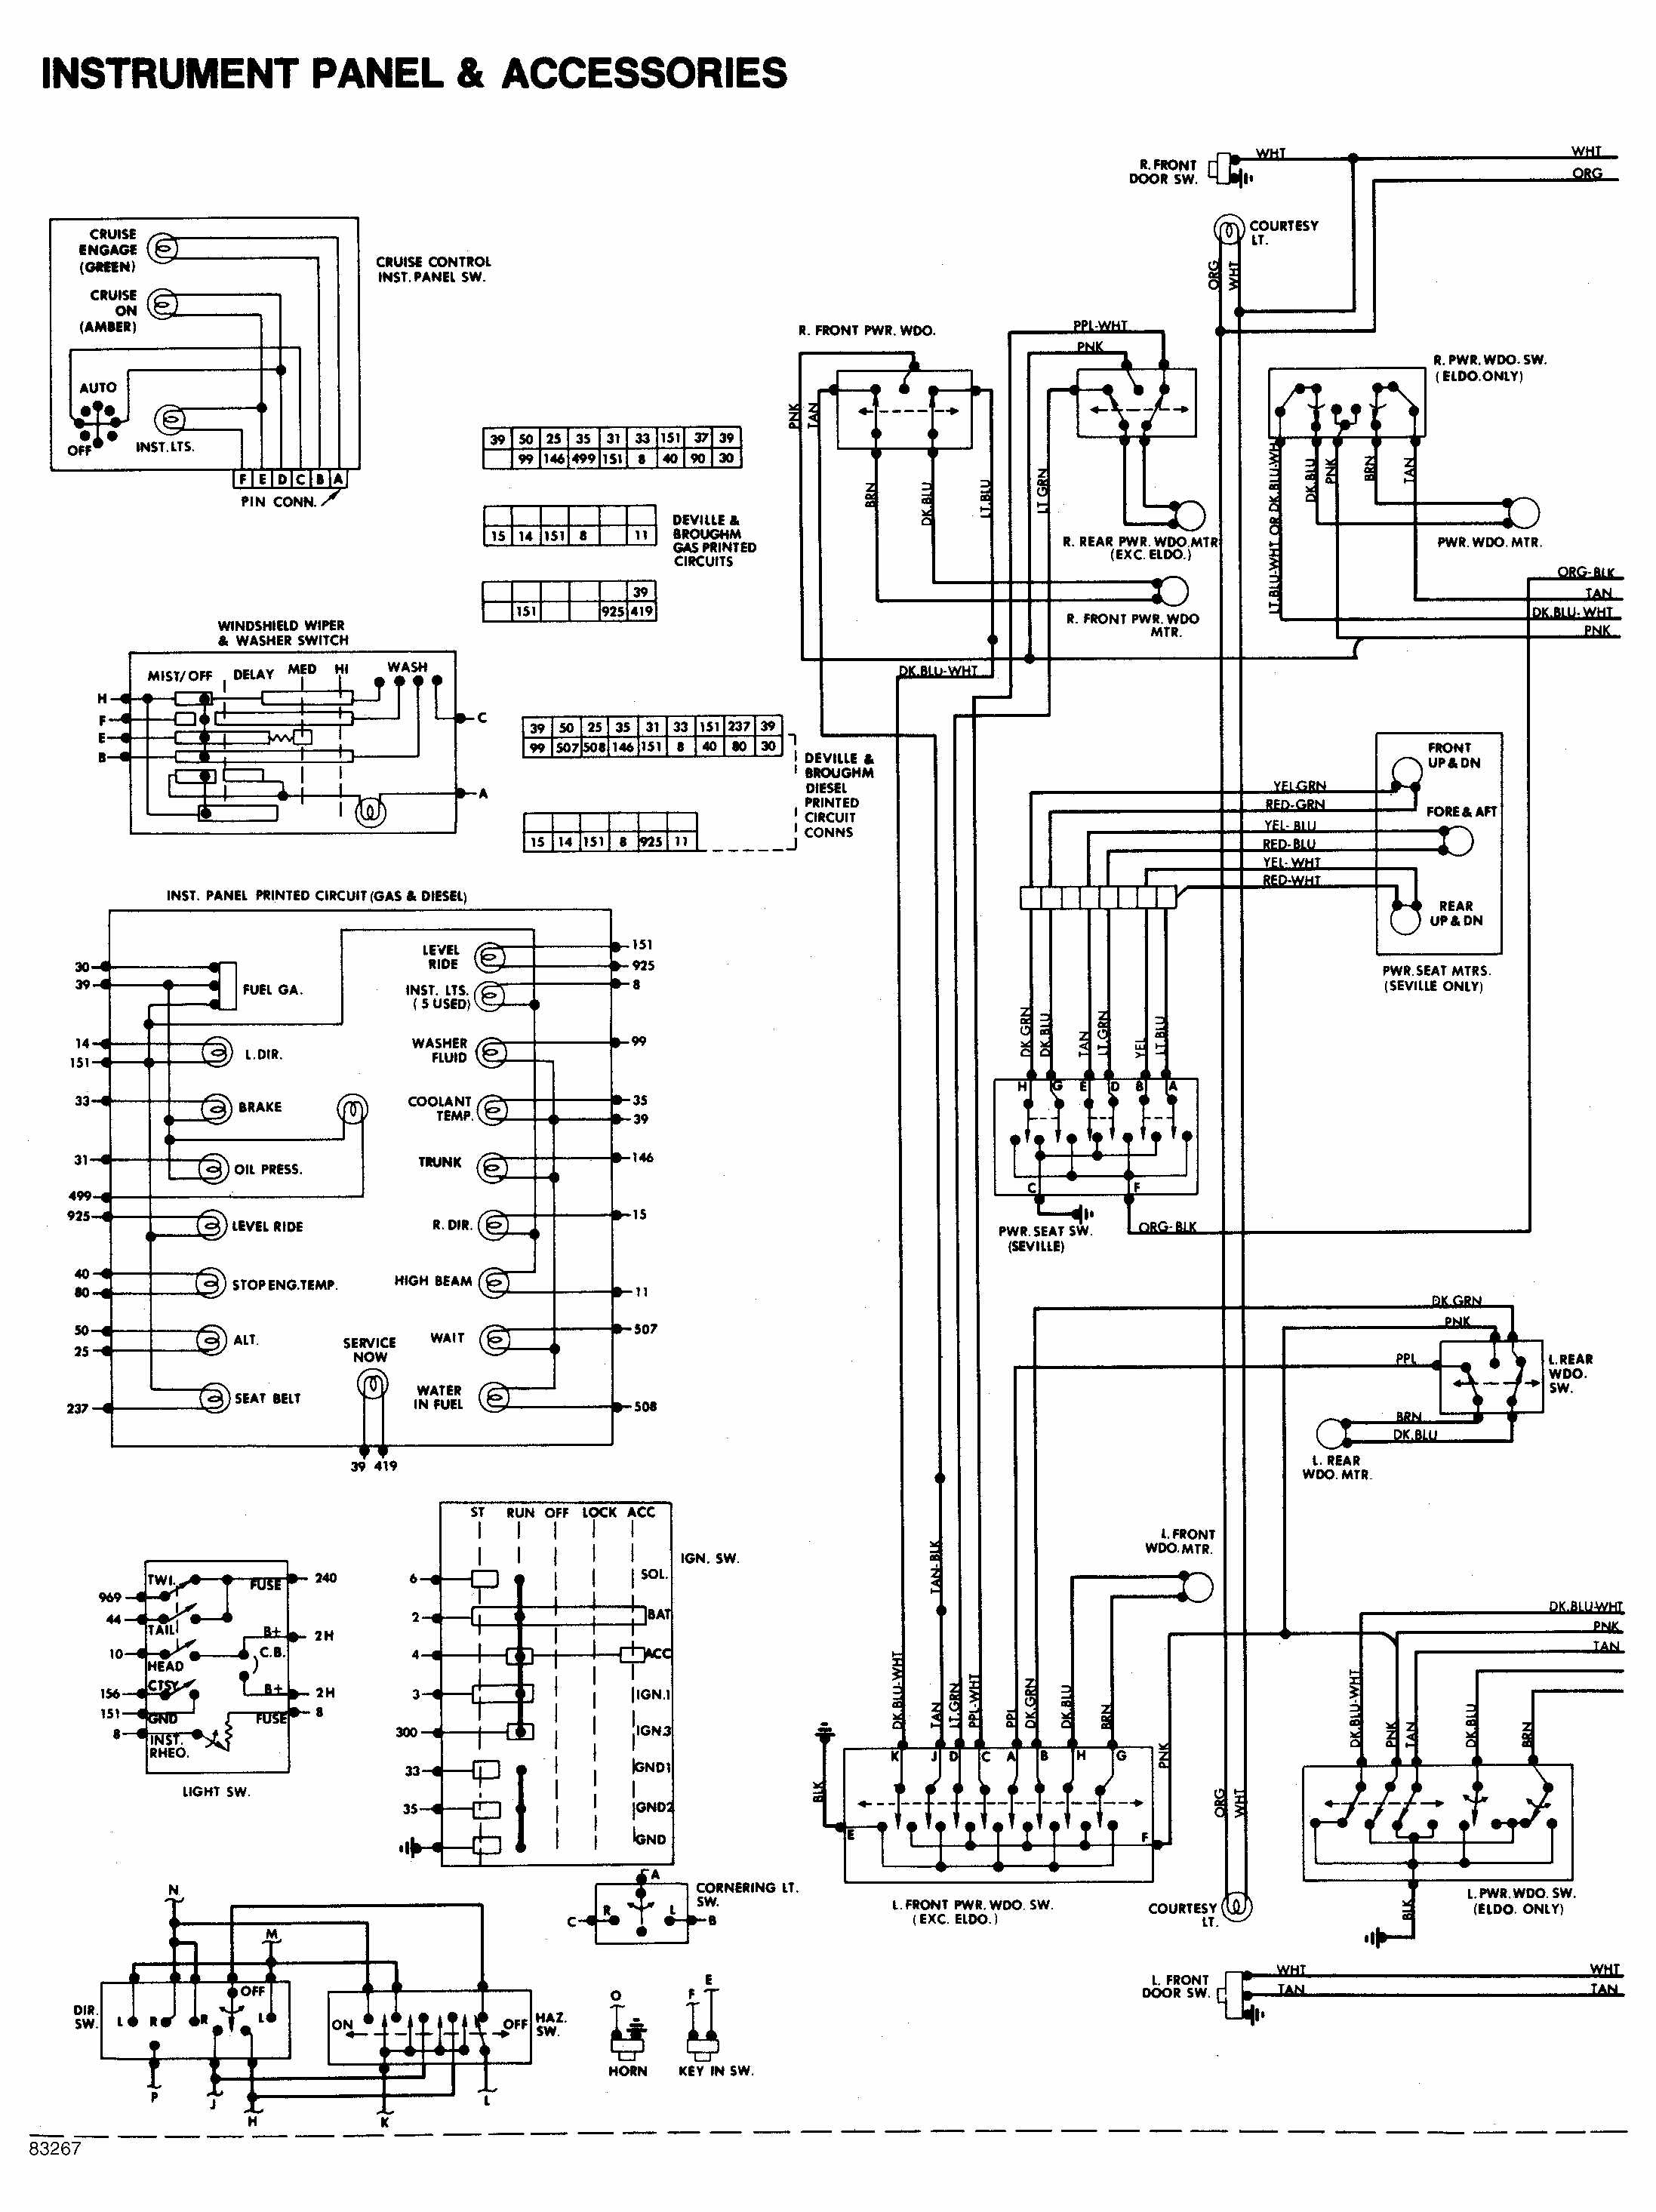 2006 international wiring diagrams wiring images2006 international wiring diagrams